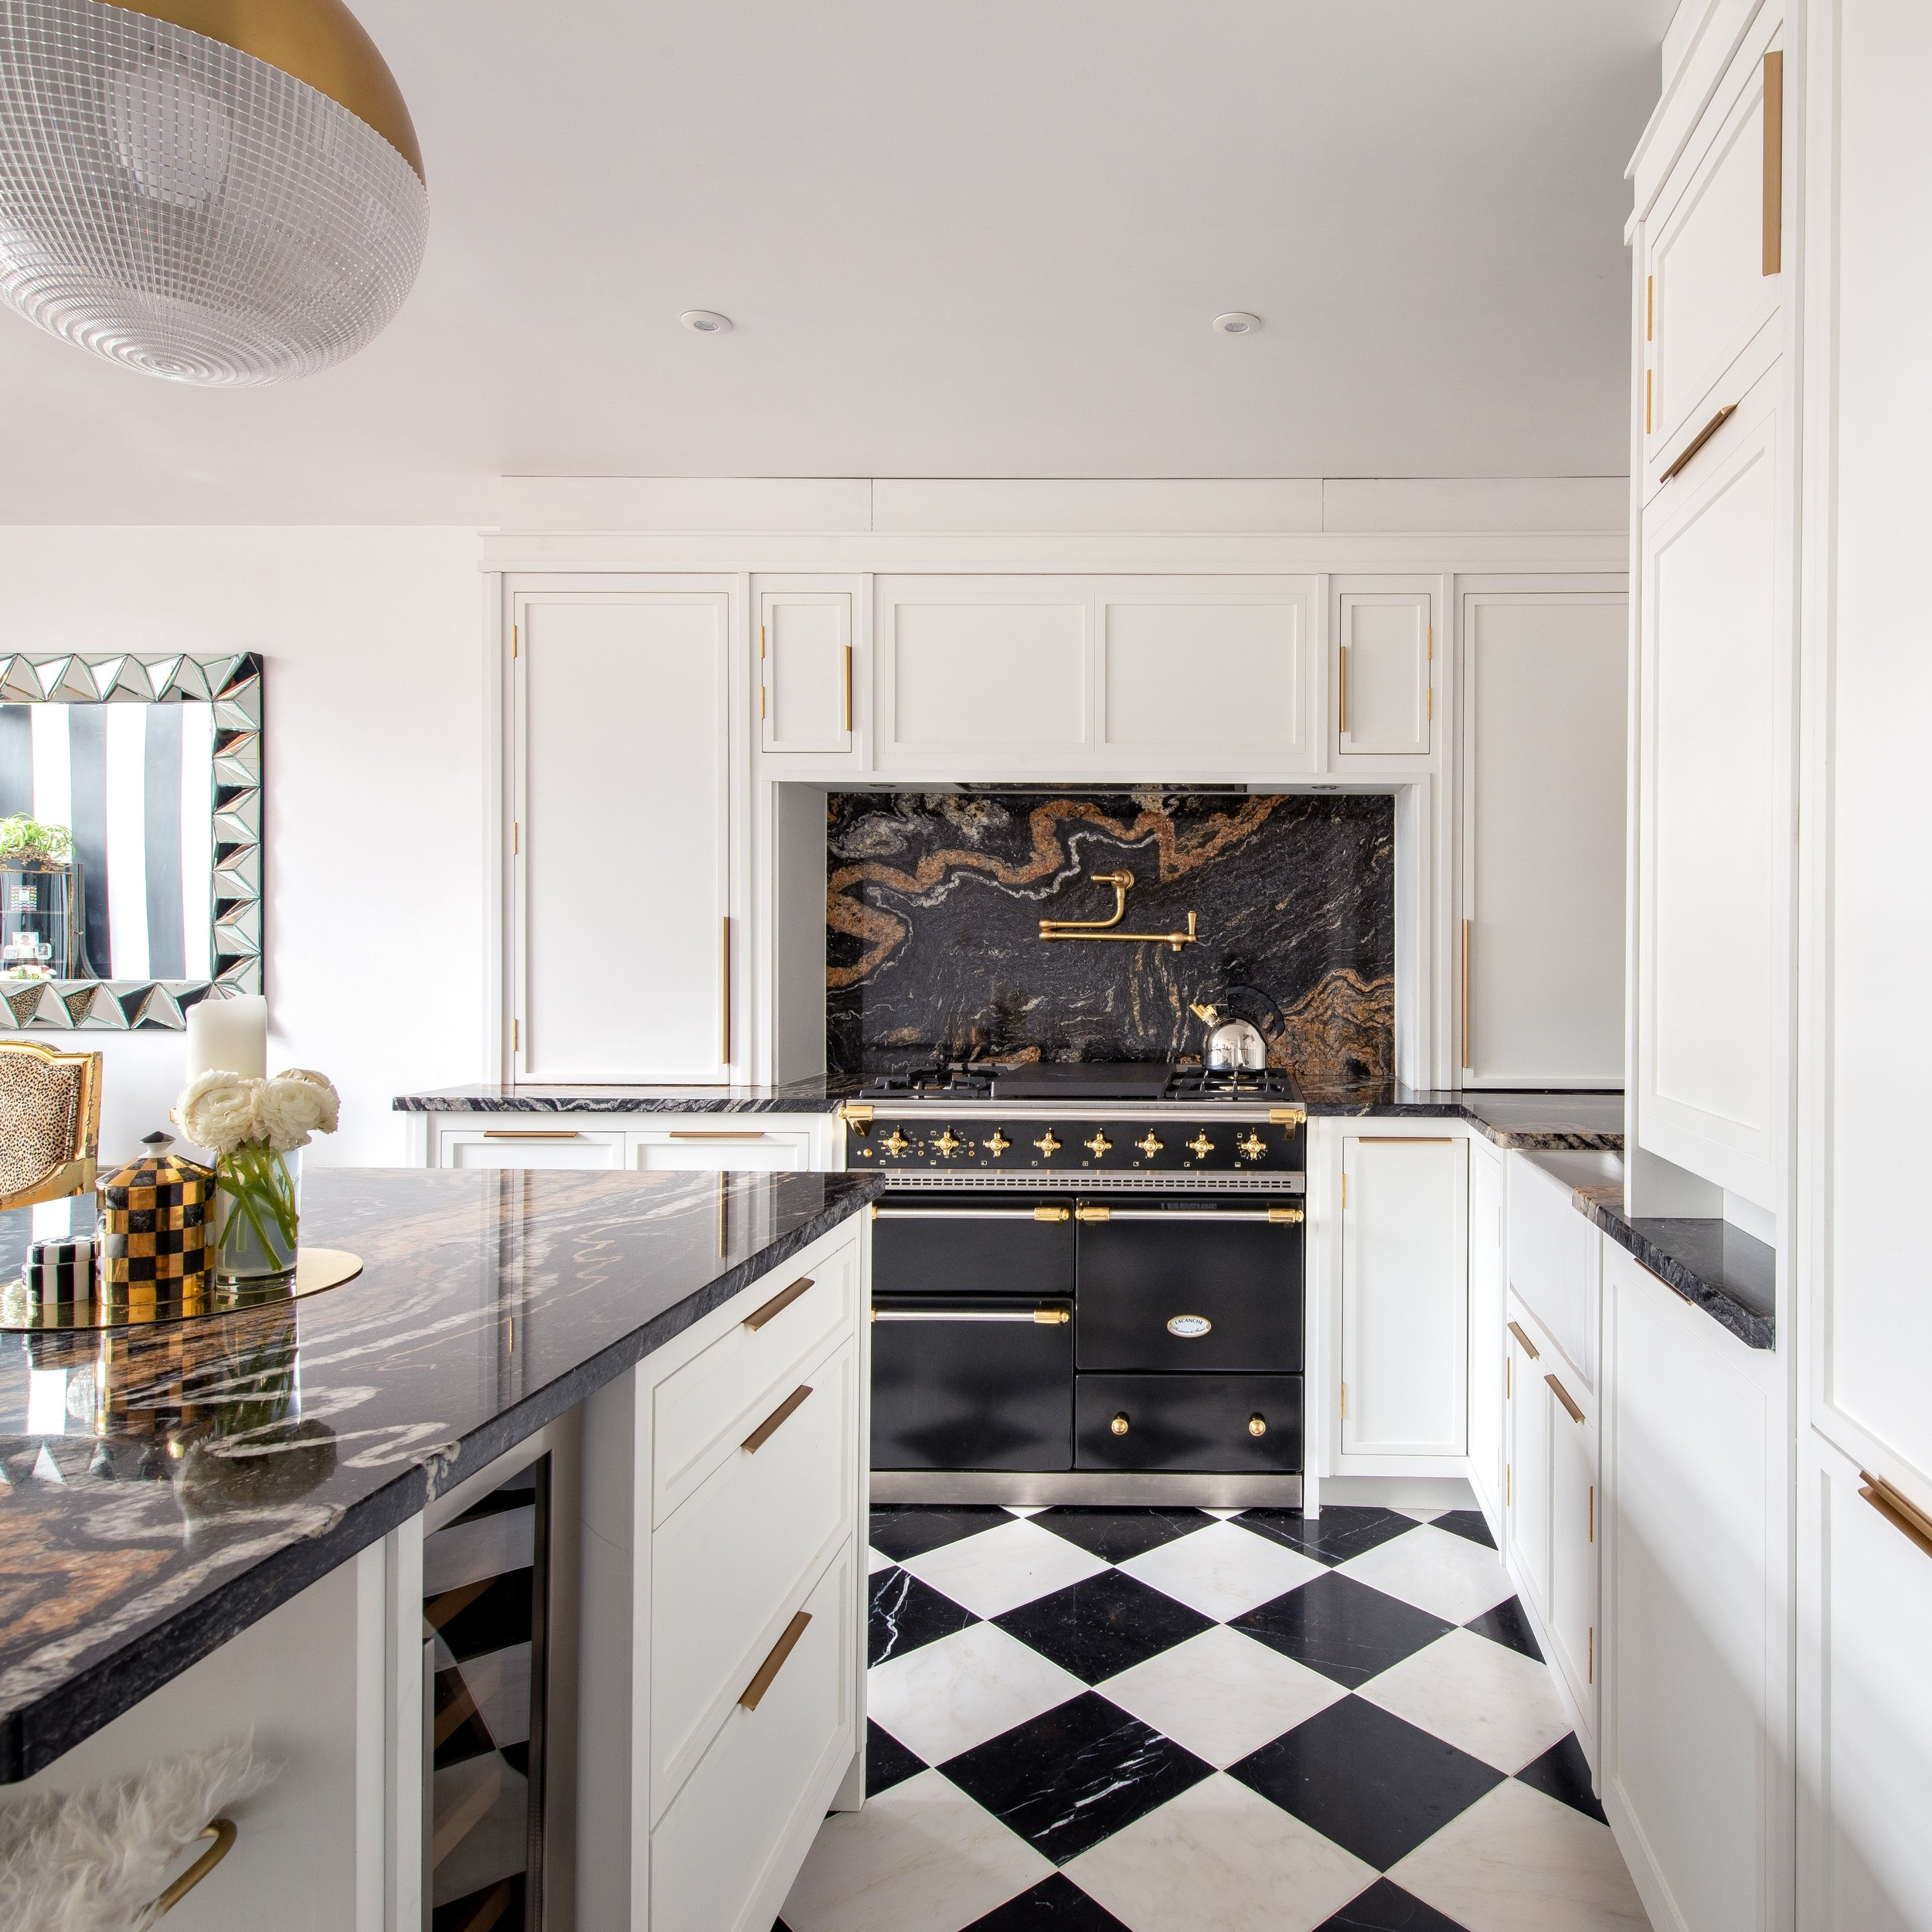 Bespoke Art Deco Kitchen Shoreditch